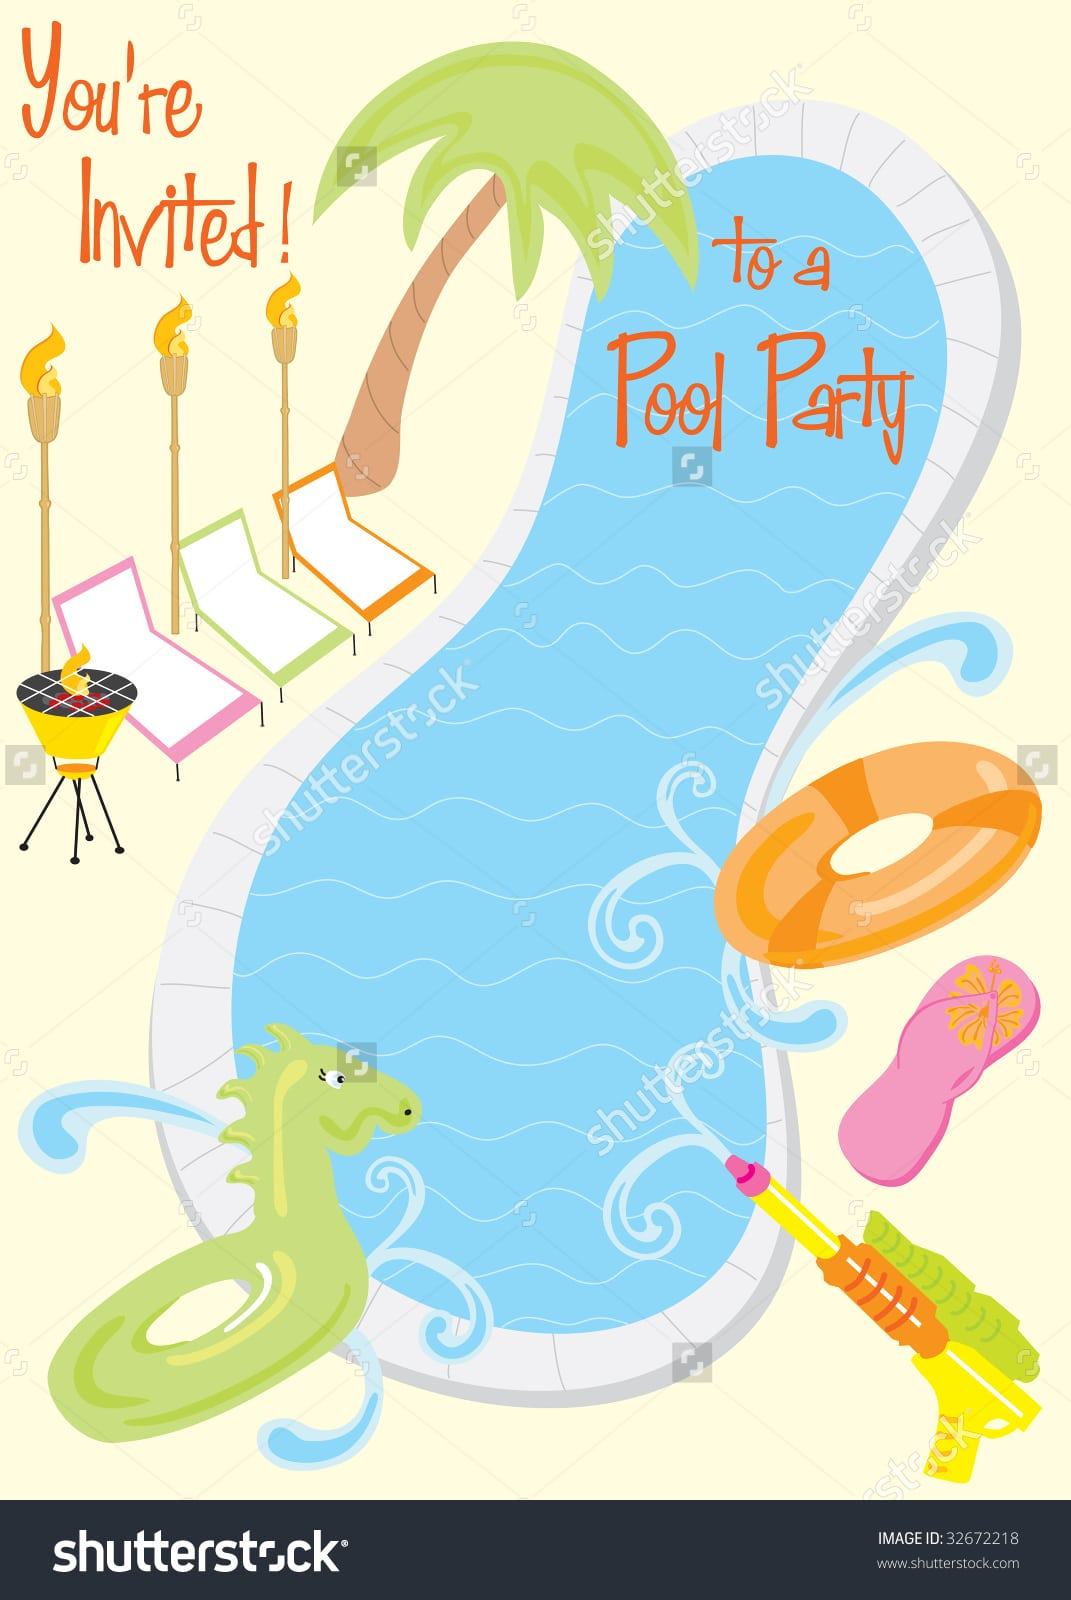 Invitation Letter For Pool Party Choice Image - Invitation Sample ...